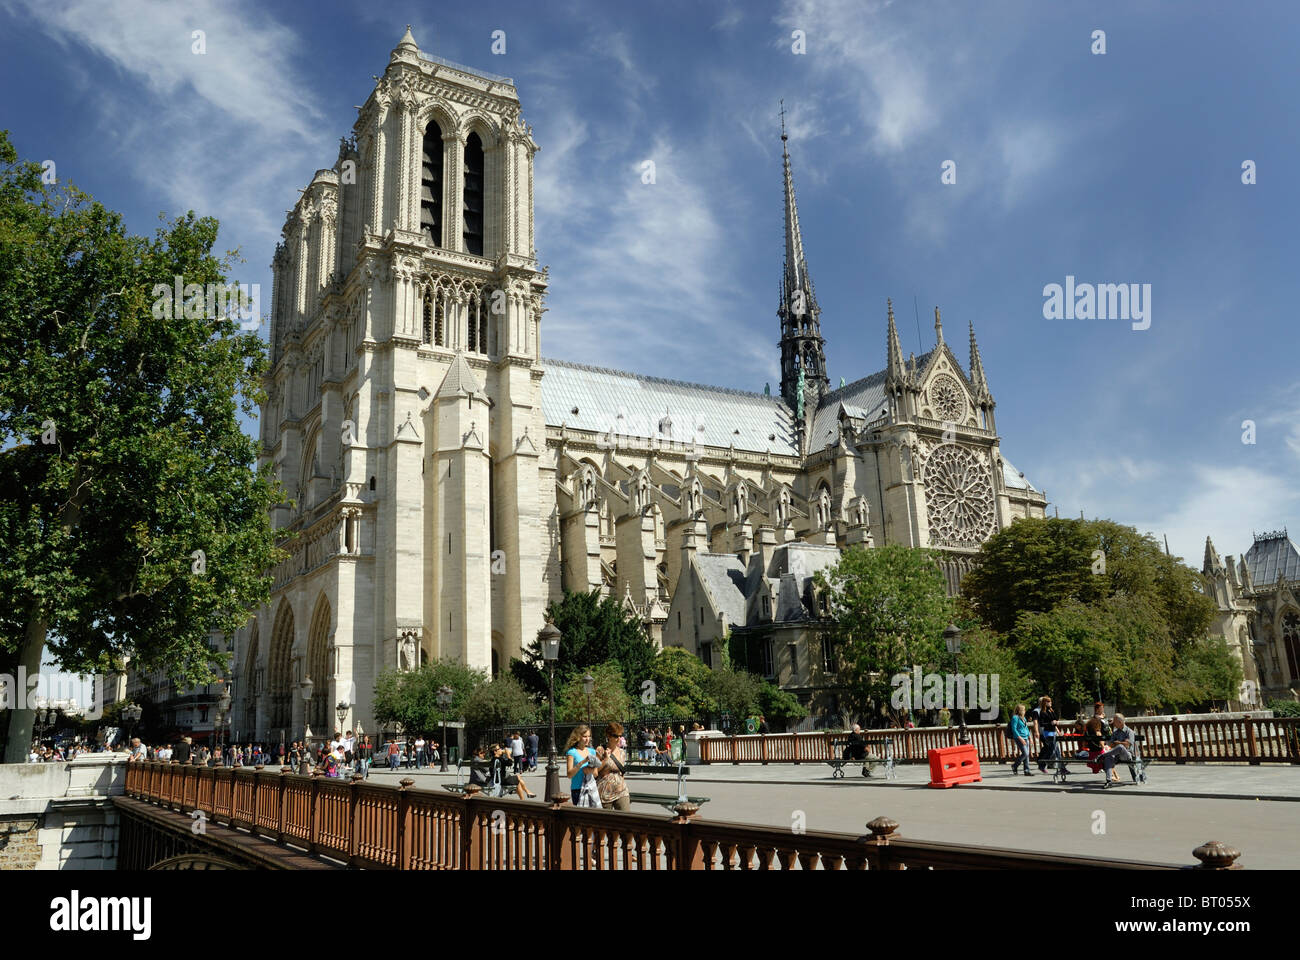 South side of Notre Dame Cathedral vied from Pont Au Double, Paris France - Stock Image